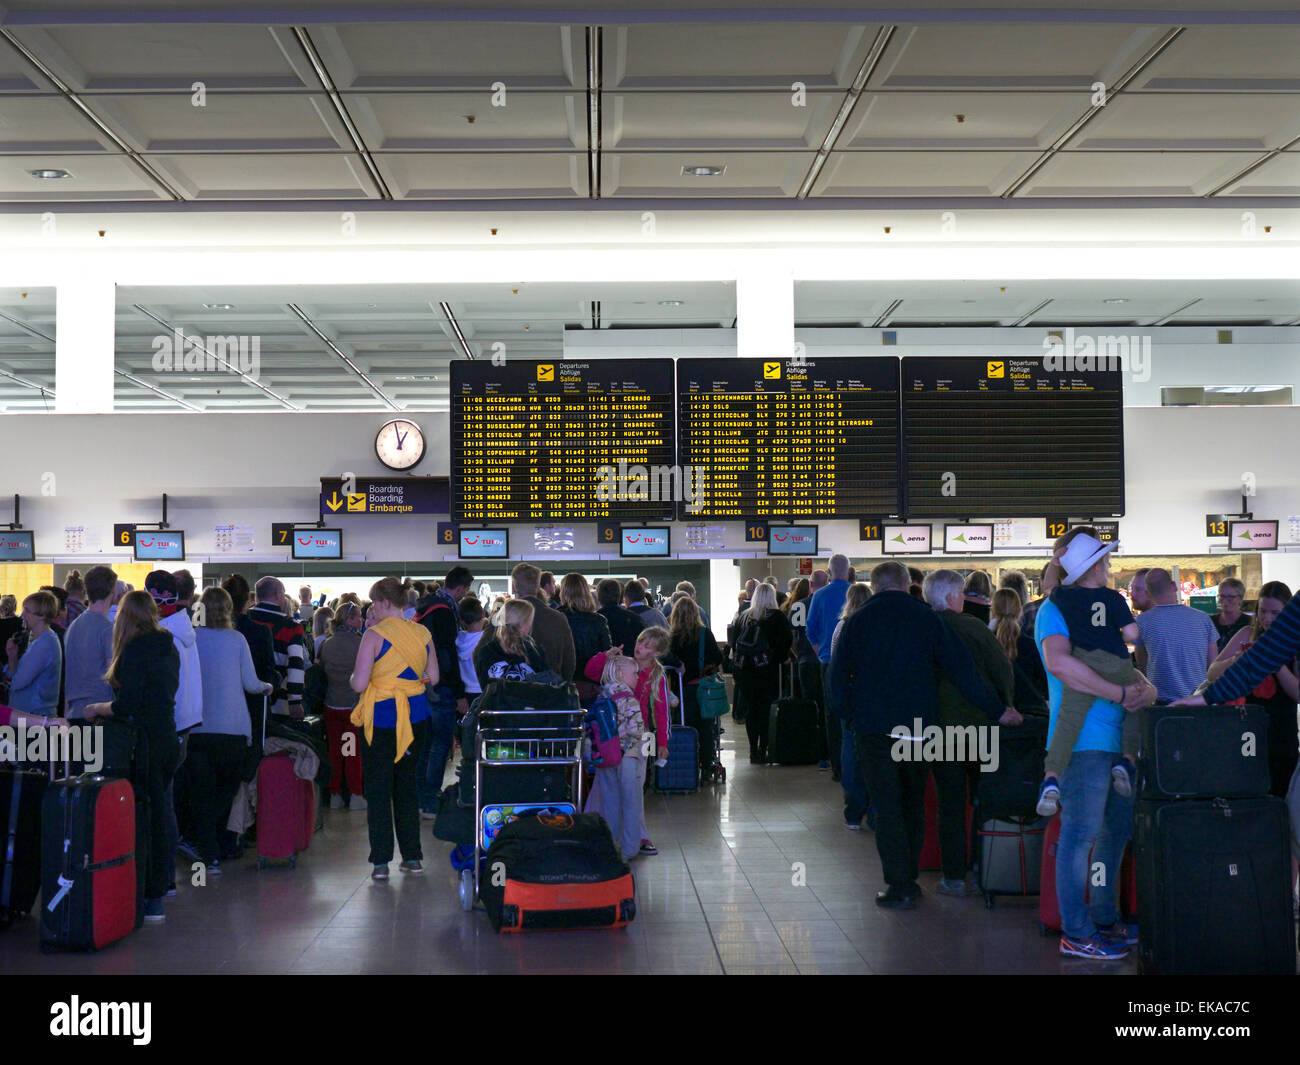 Delayed queues of charter flight passengers and luggage wait on airport concourse to check in to their flights - Stock Image